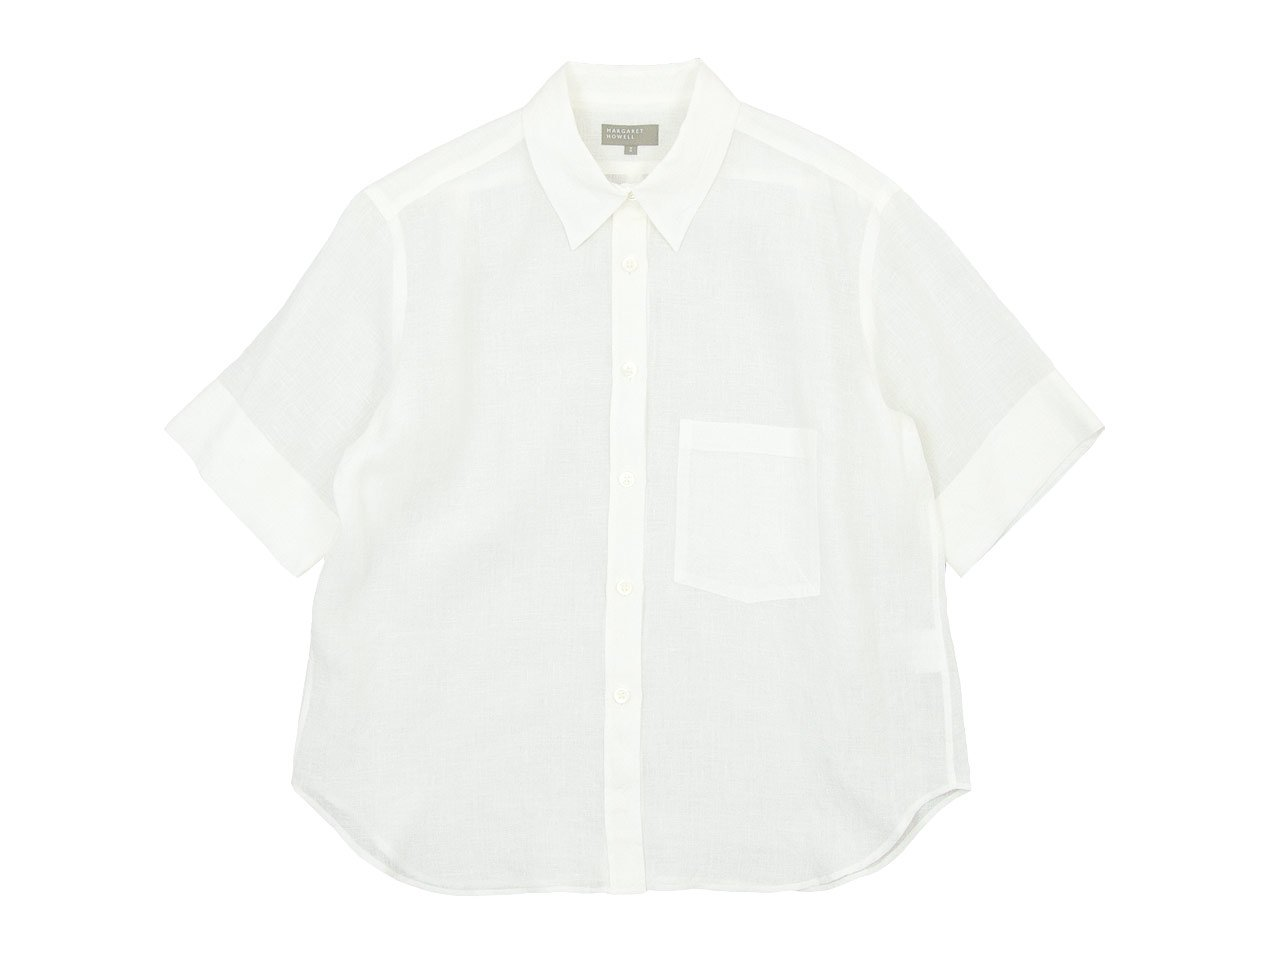 MARGARET HOWELL FINE LINEN S/S SHIRTS 030WHITE〔レディース〕